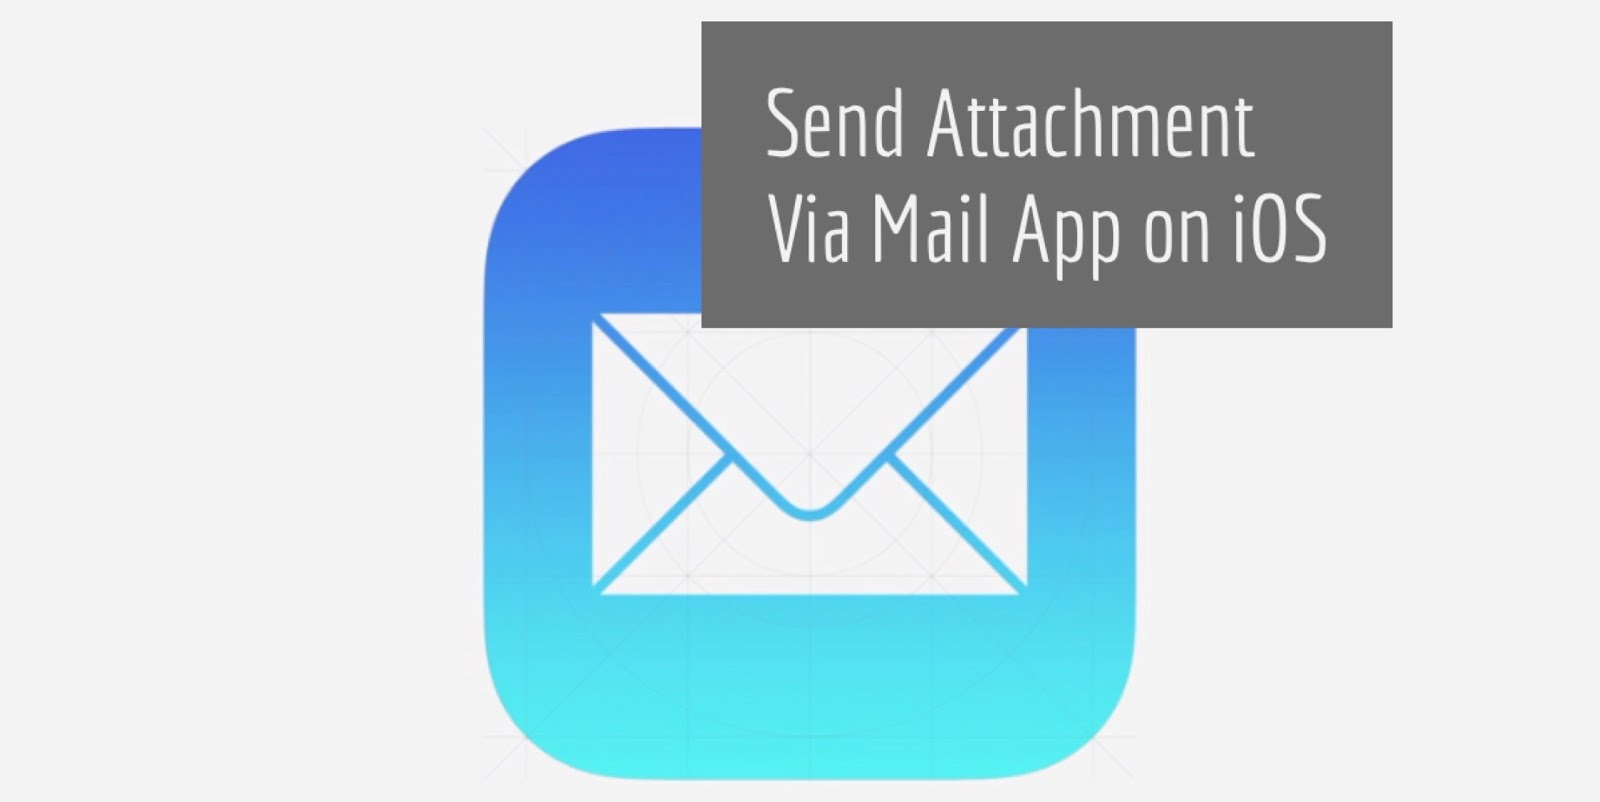 Your iPhone gives you two ways to send attachments via mail app.